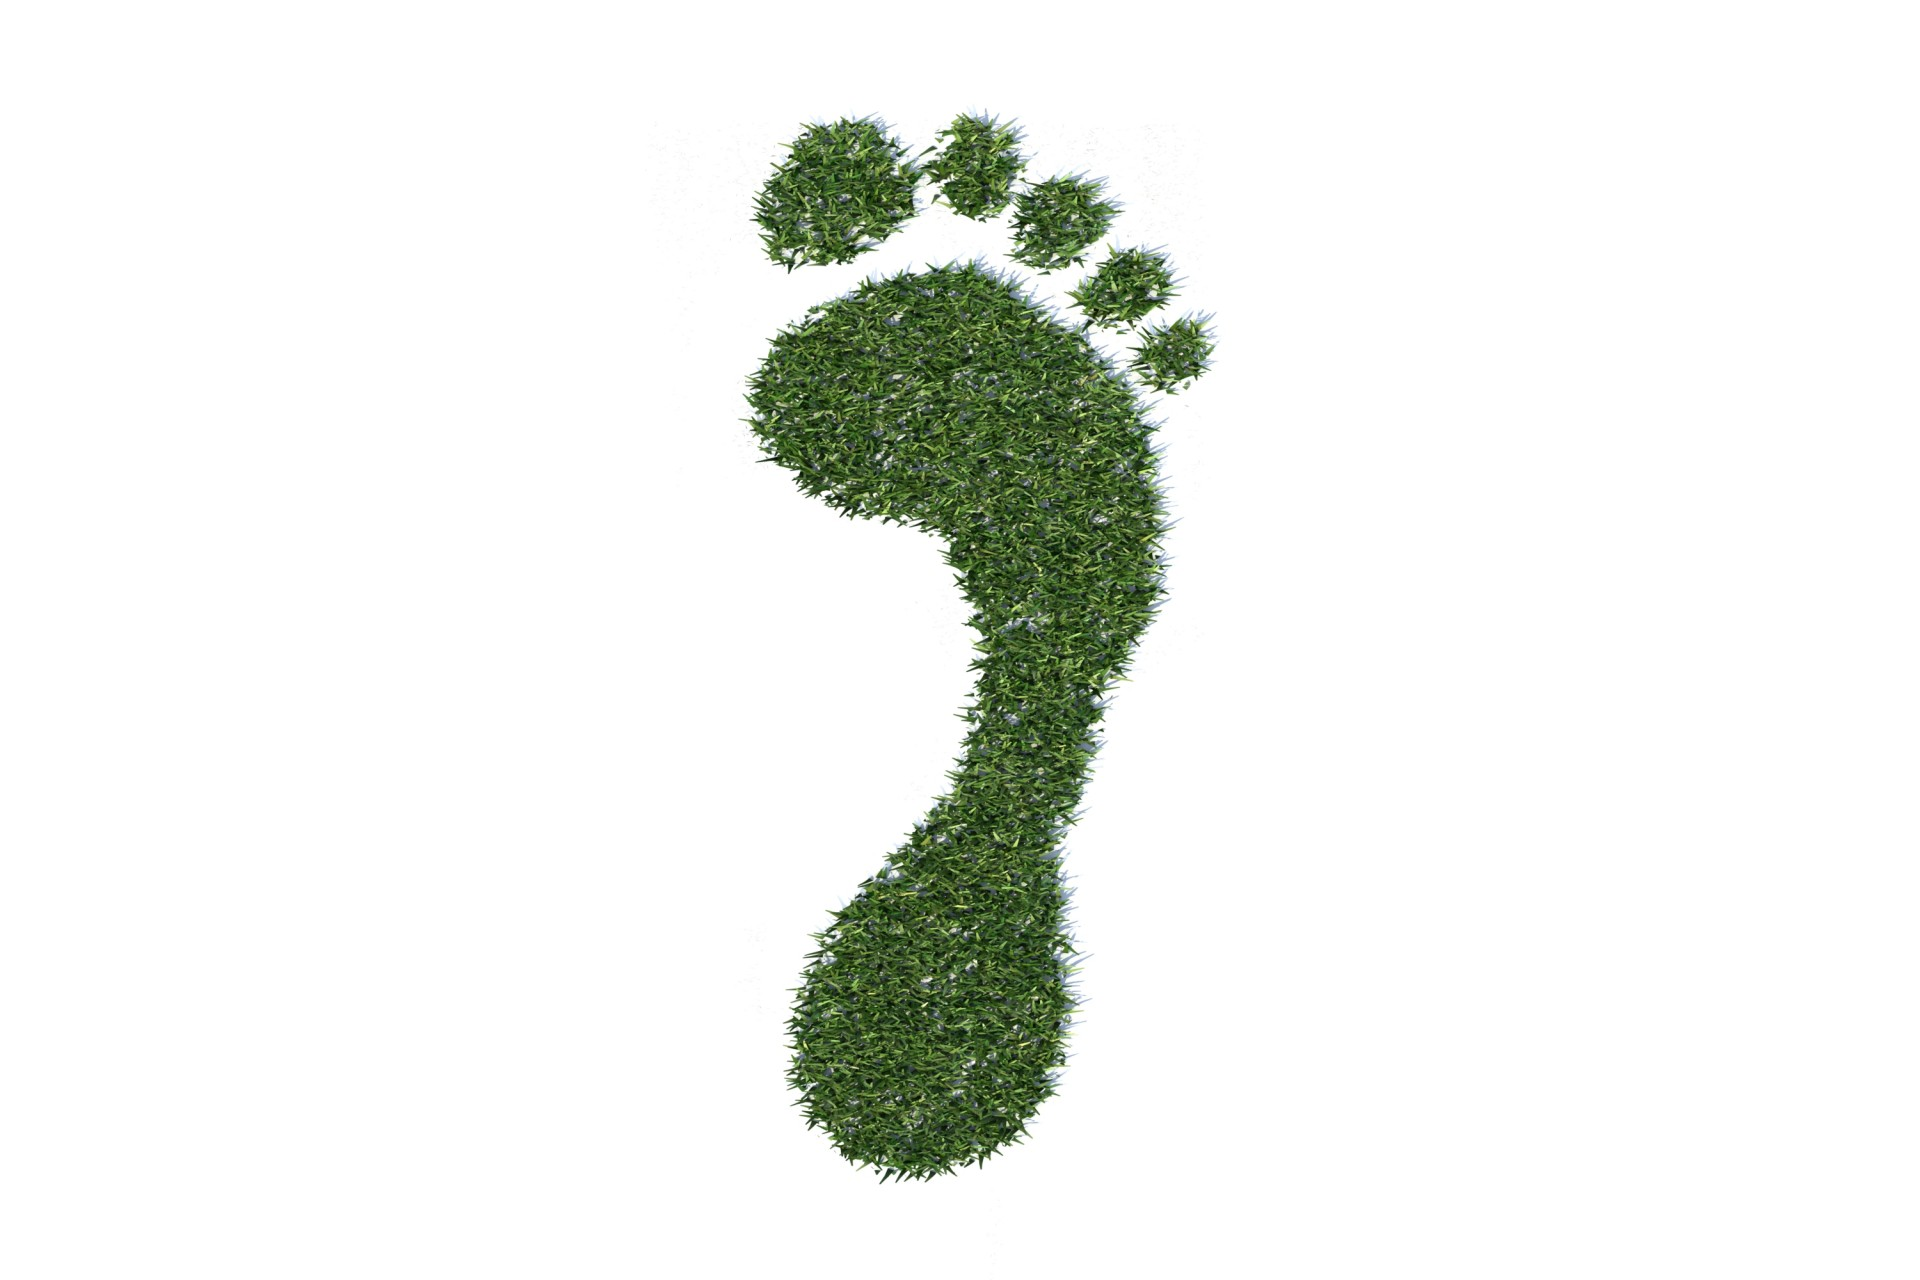 IB Environmental Systems & Societies: 1.4 Ecological Footprints - Personal Investigation